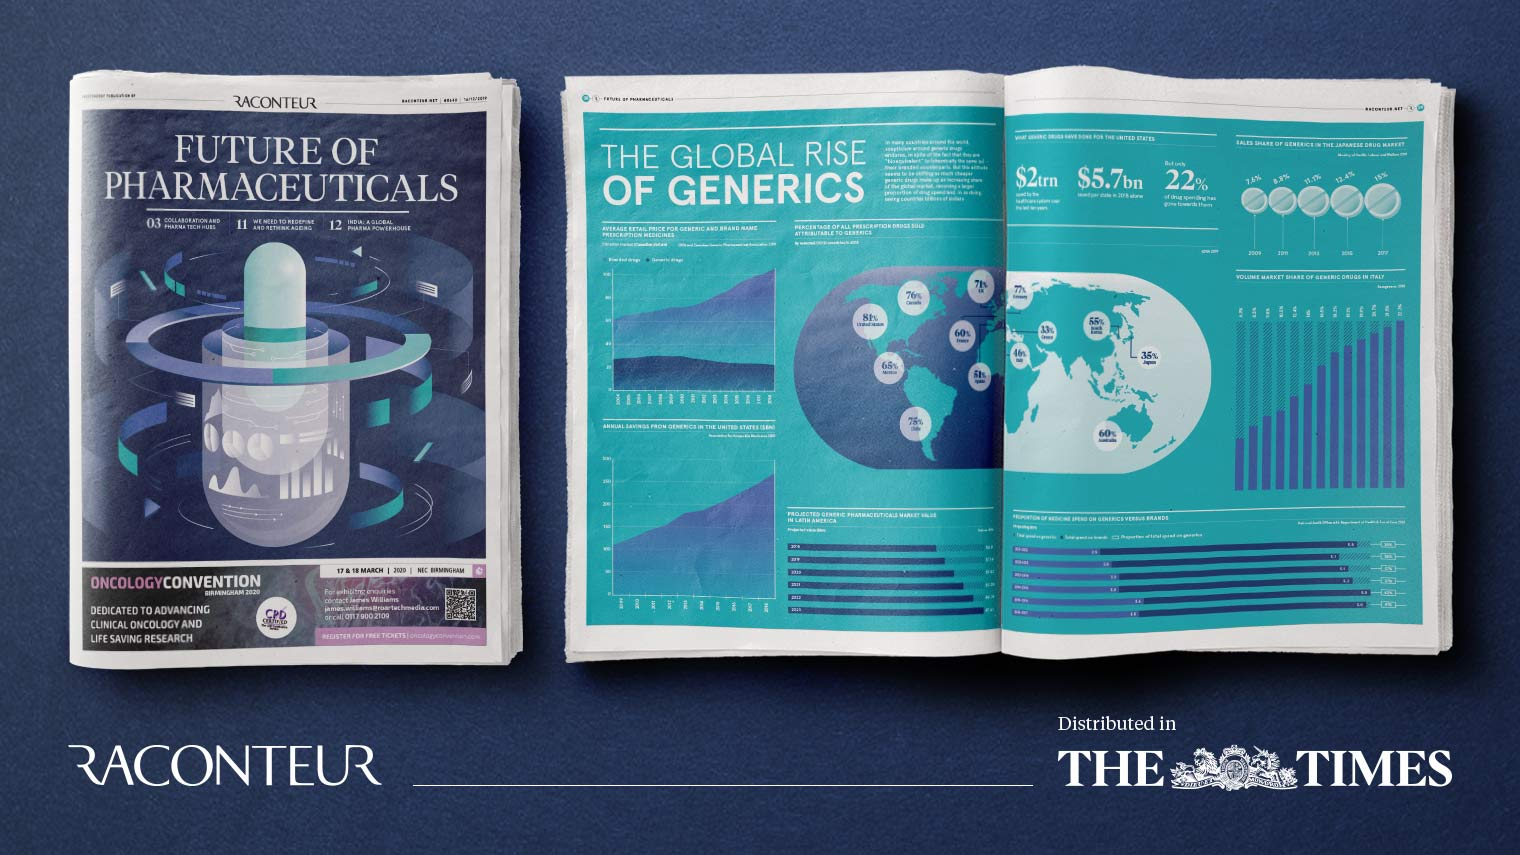 As featured in Raconteur, distributed in The Times